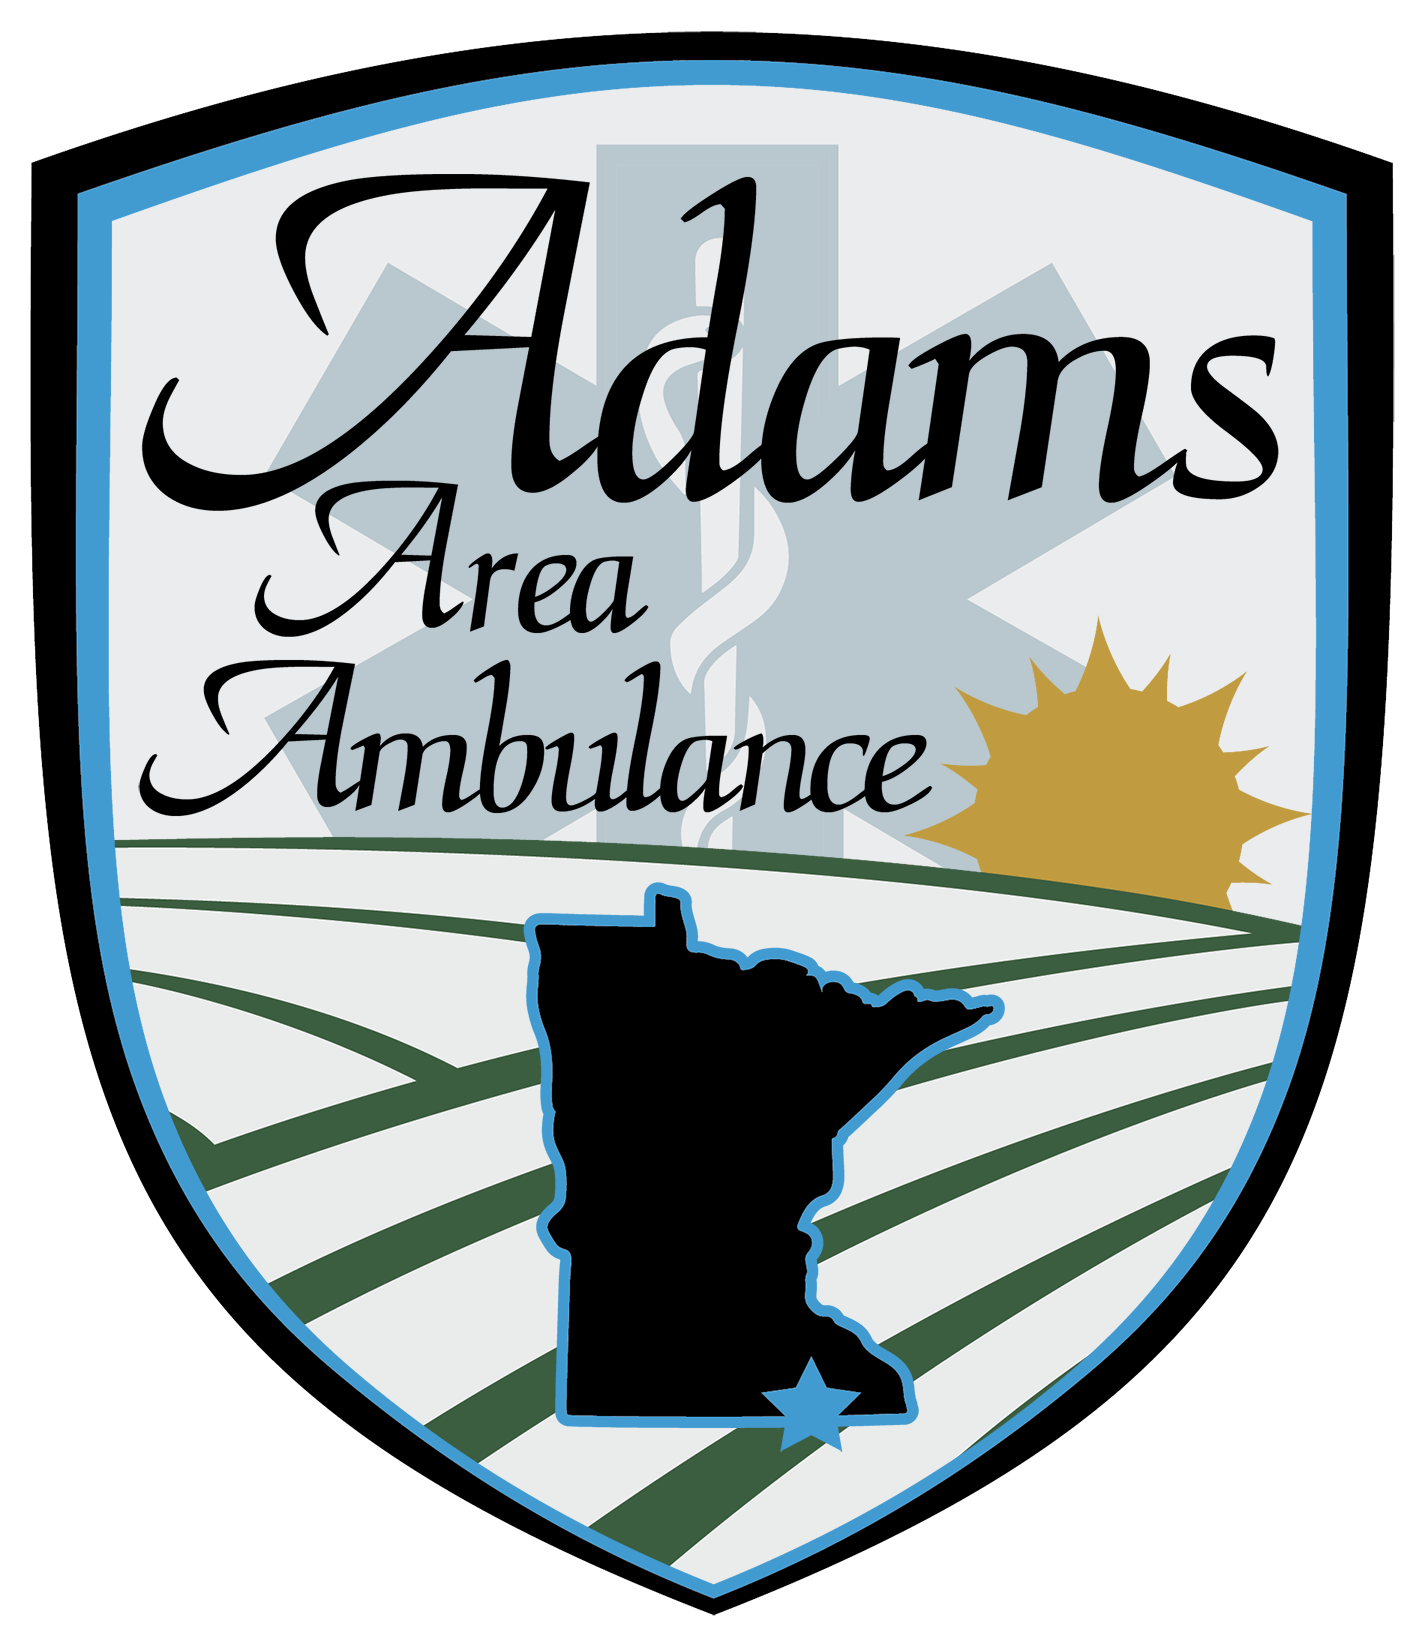 Adams Area Ambulance Service